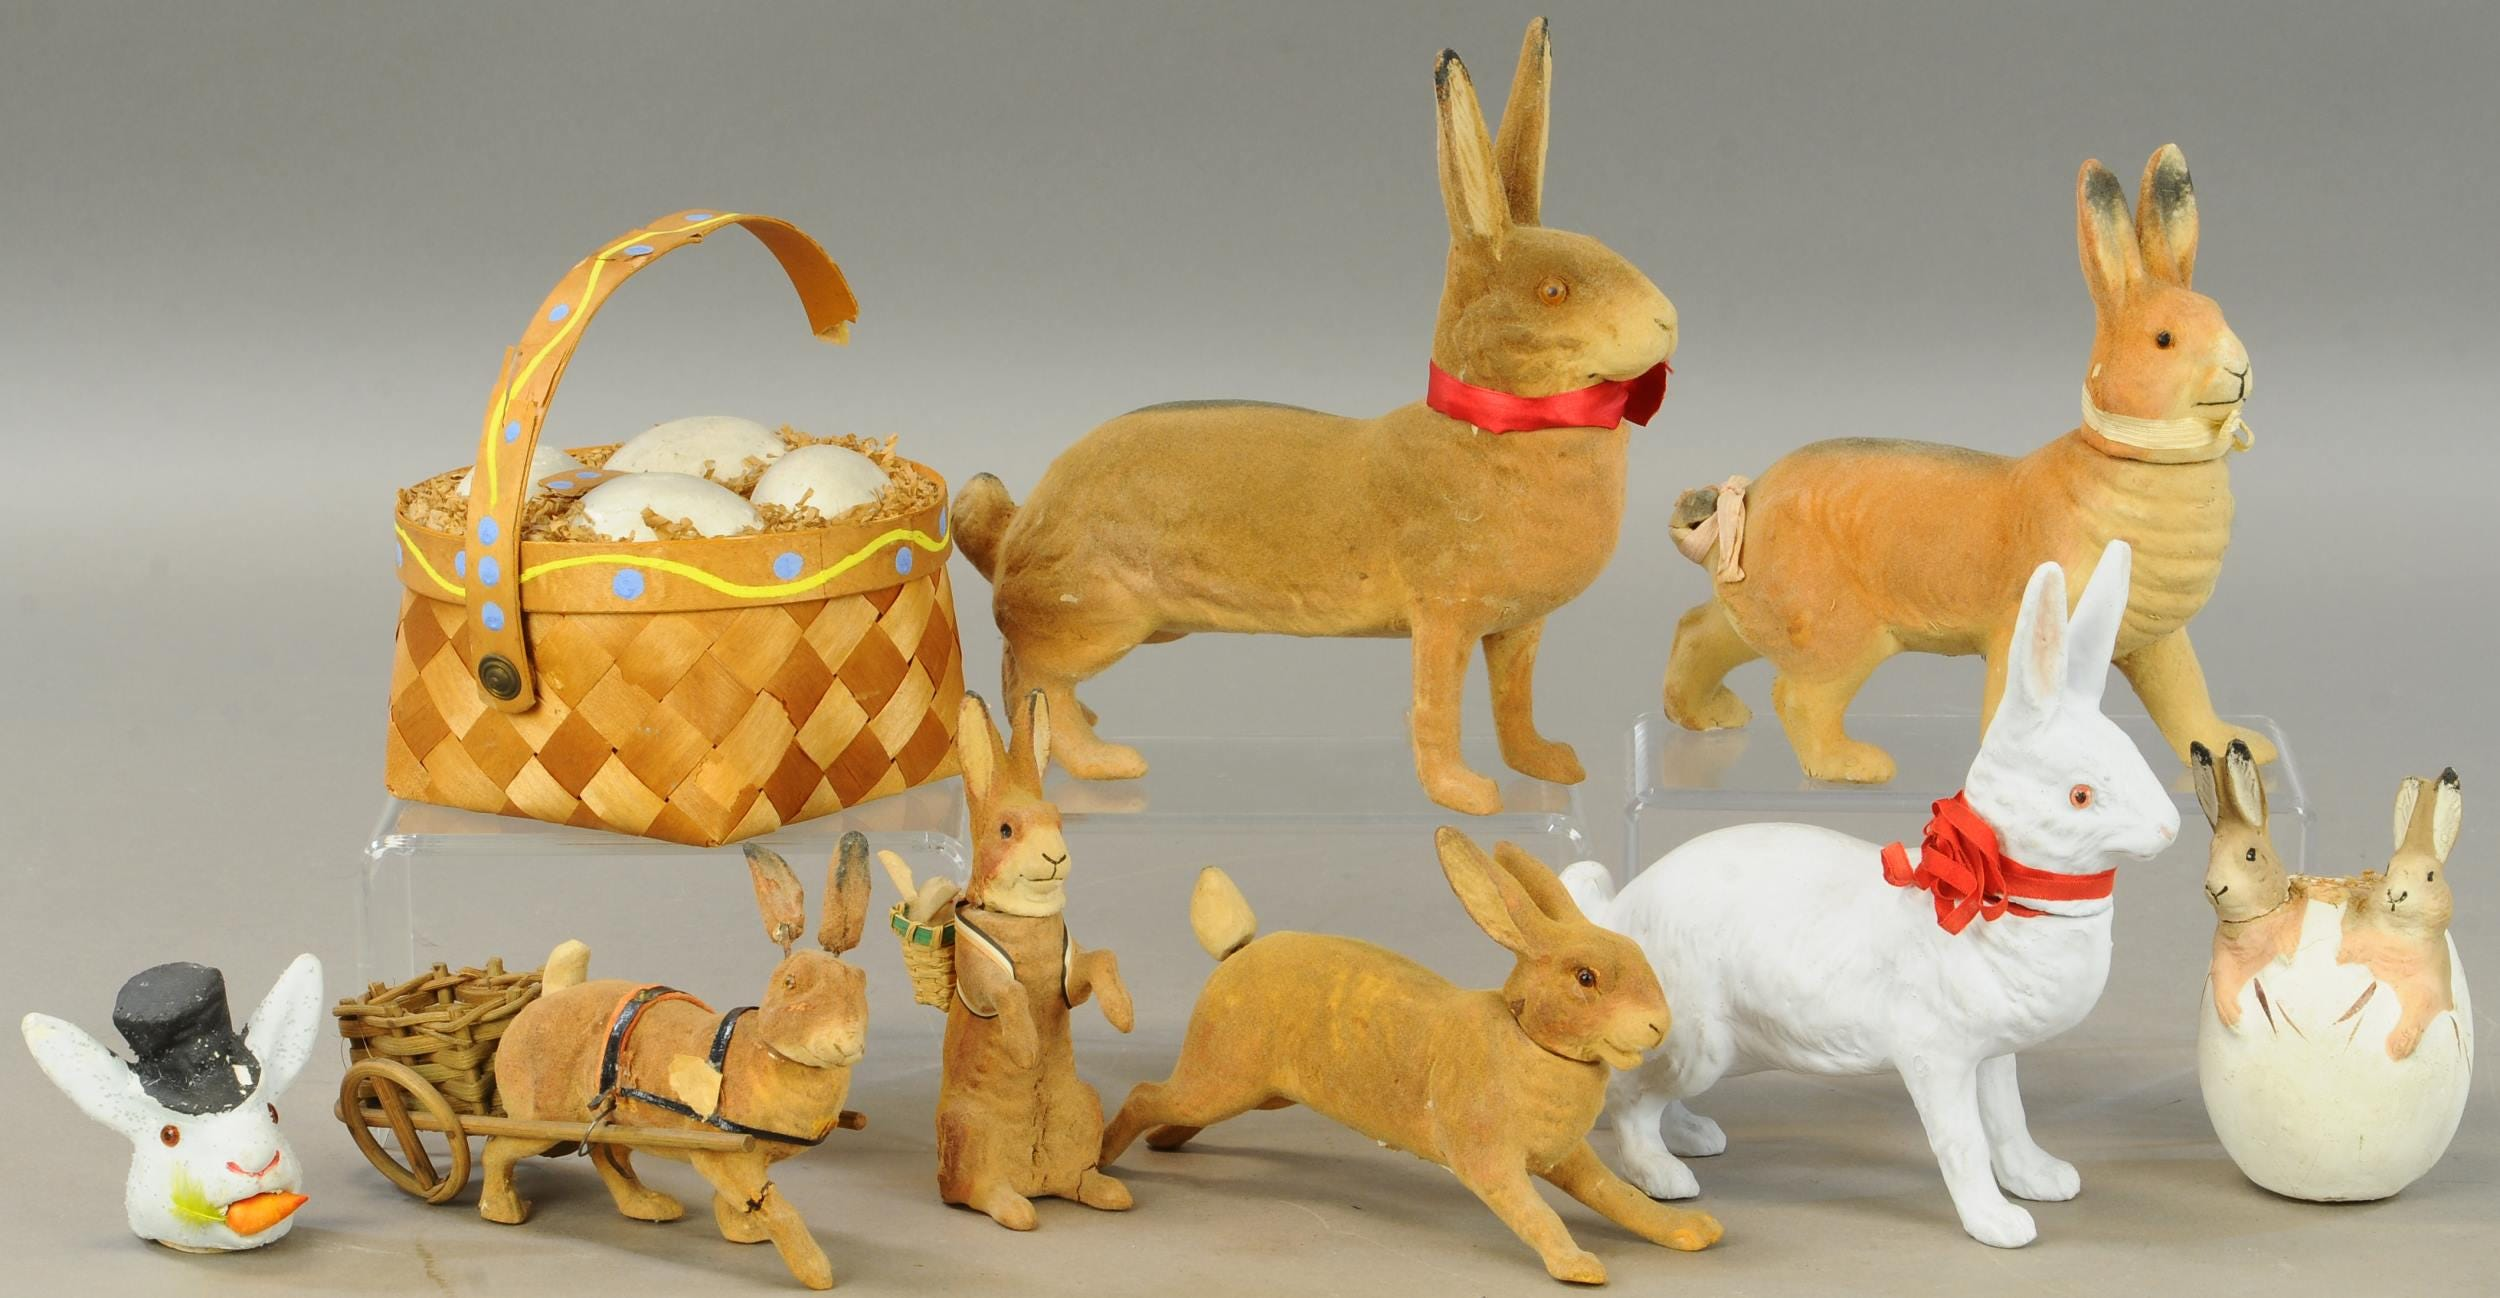 Antique rabbit candy containers are delicate, especially their ears. This warren of nine bunny candy containers plus an Easter basket with eggs all had some condition issues, except the all-white rabbit. The group lot fetched $1,800 plus the buyer's premium in December 2020 at Bertoia Auctions.